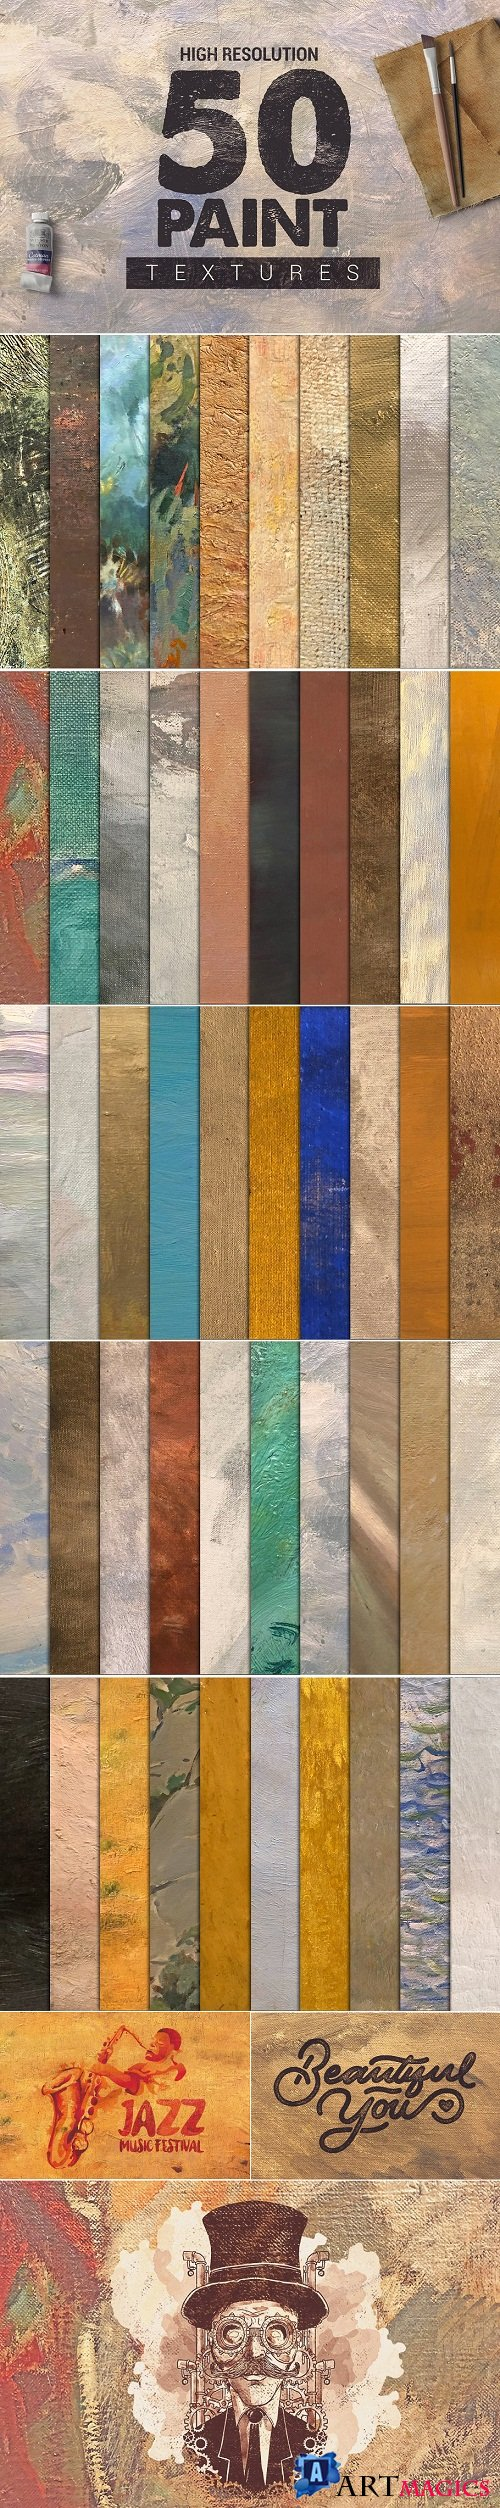 Bundle Paint Textures x50 - 2786041